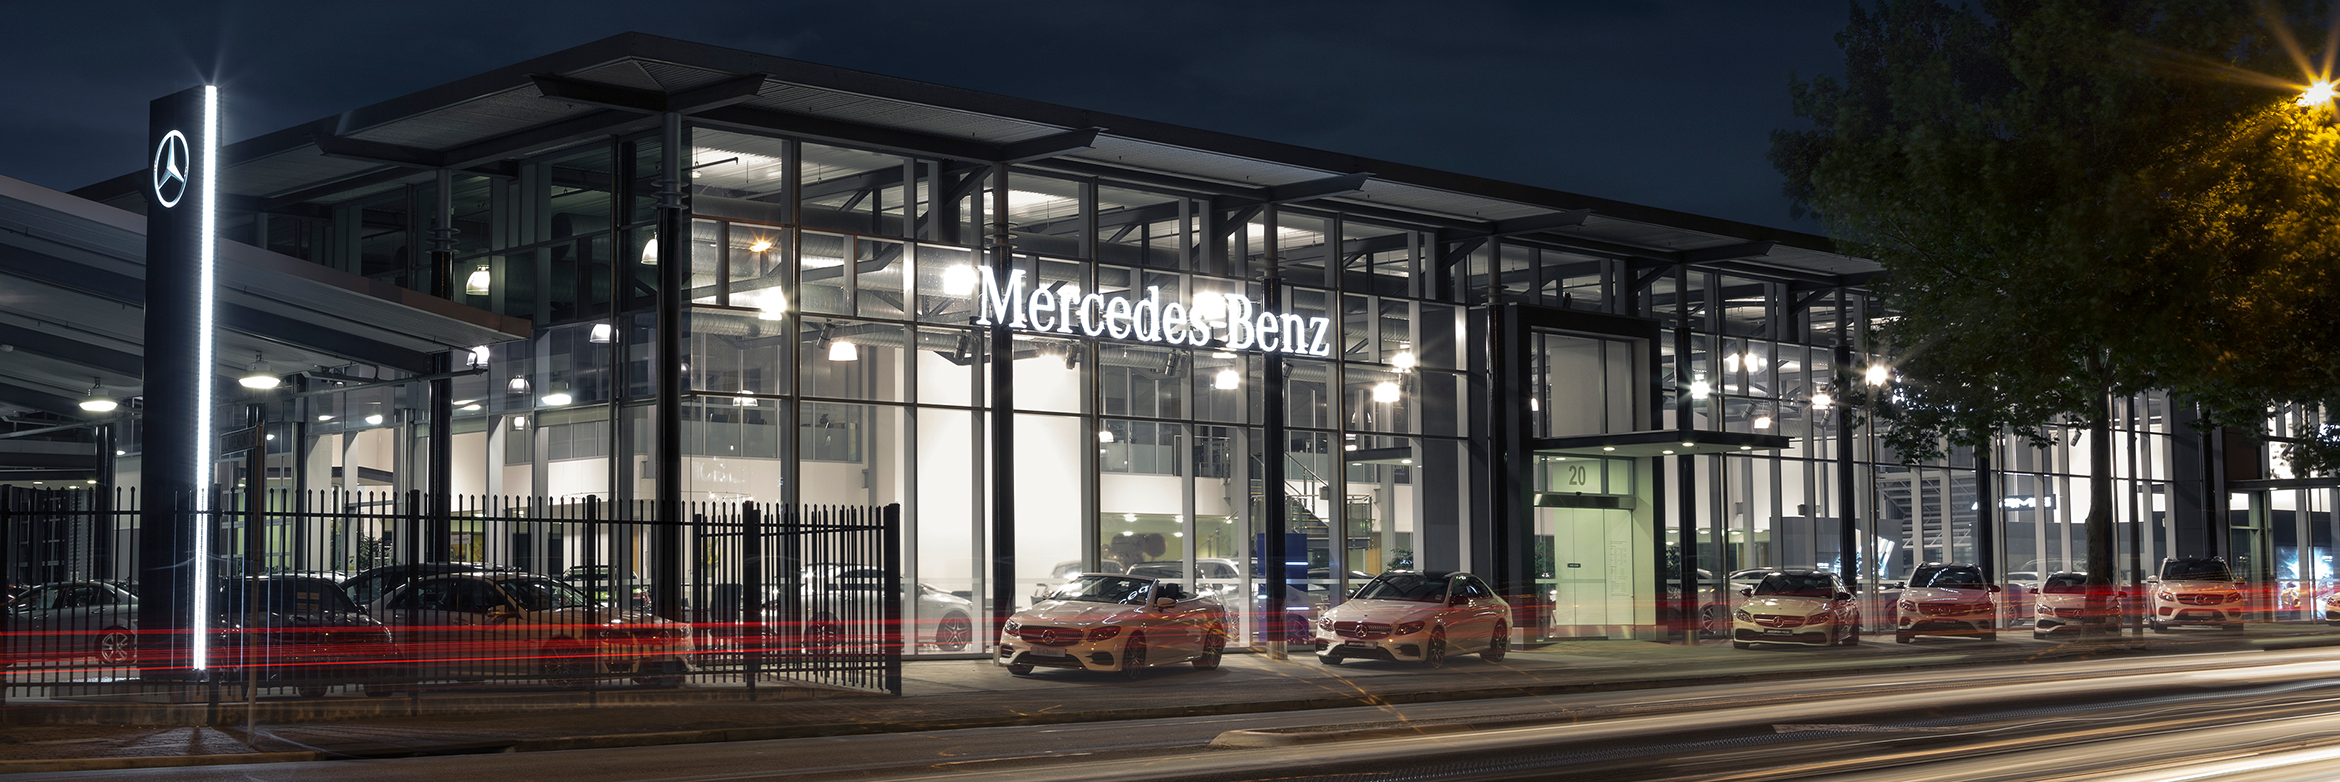 Mercedes-Benz Adelaide - CMV Group